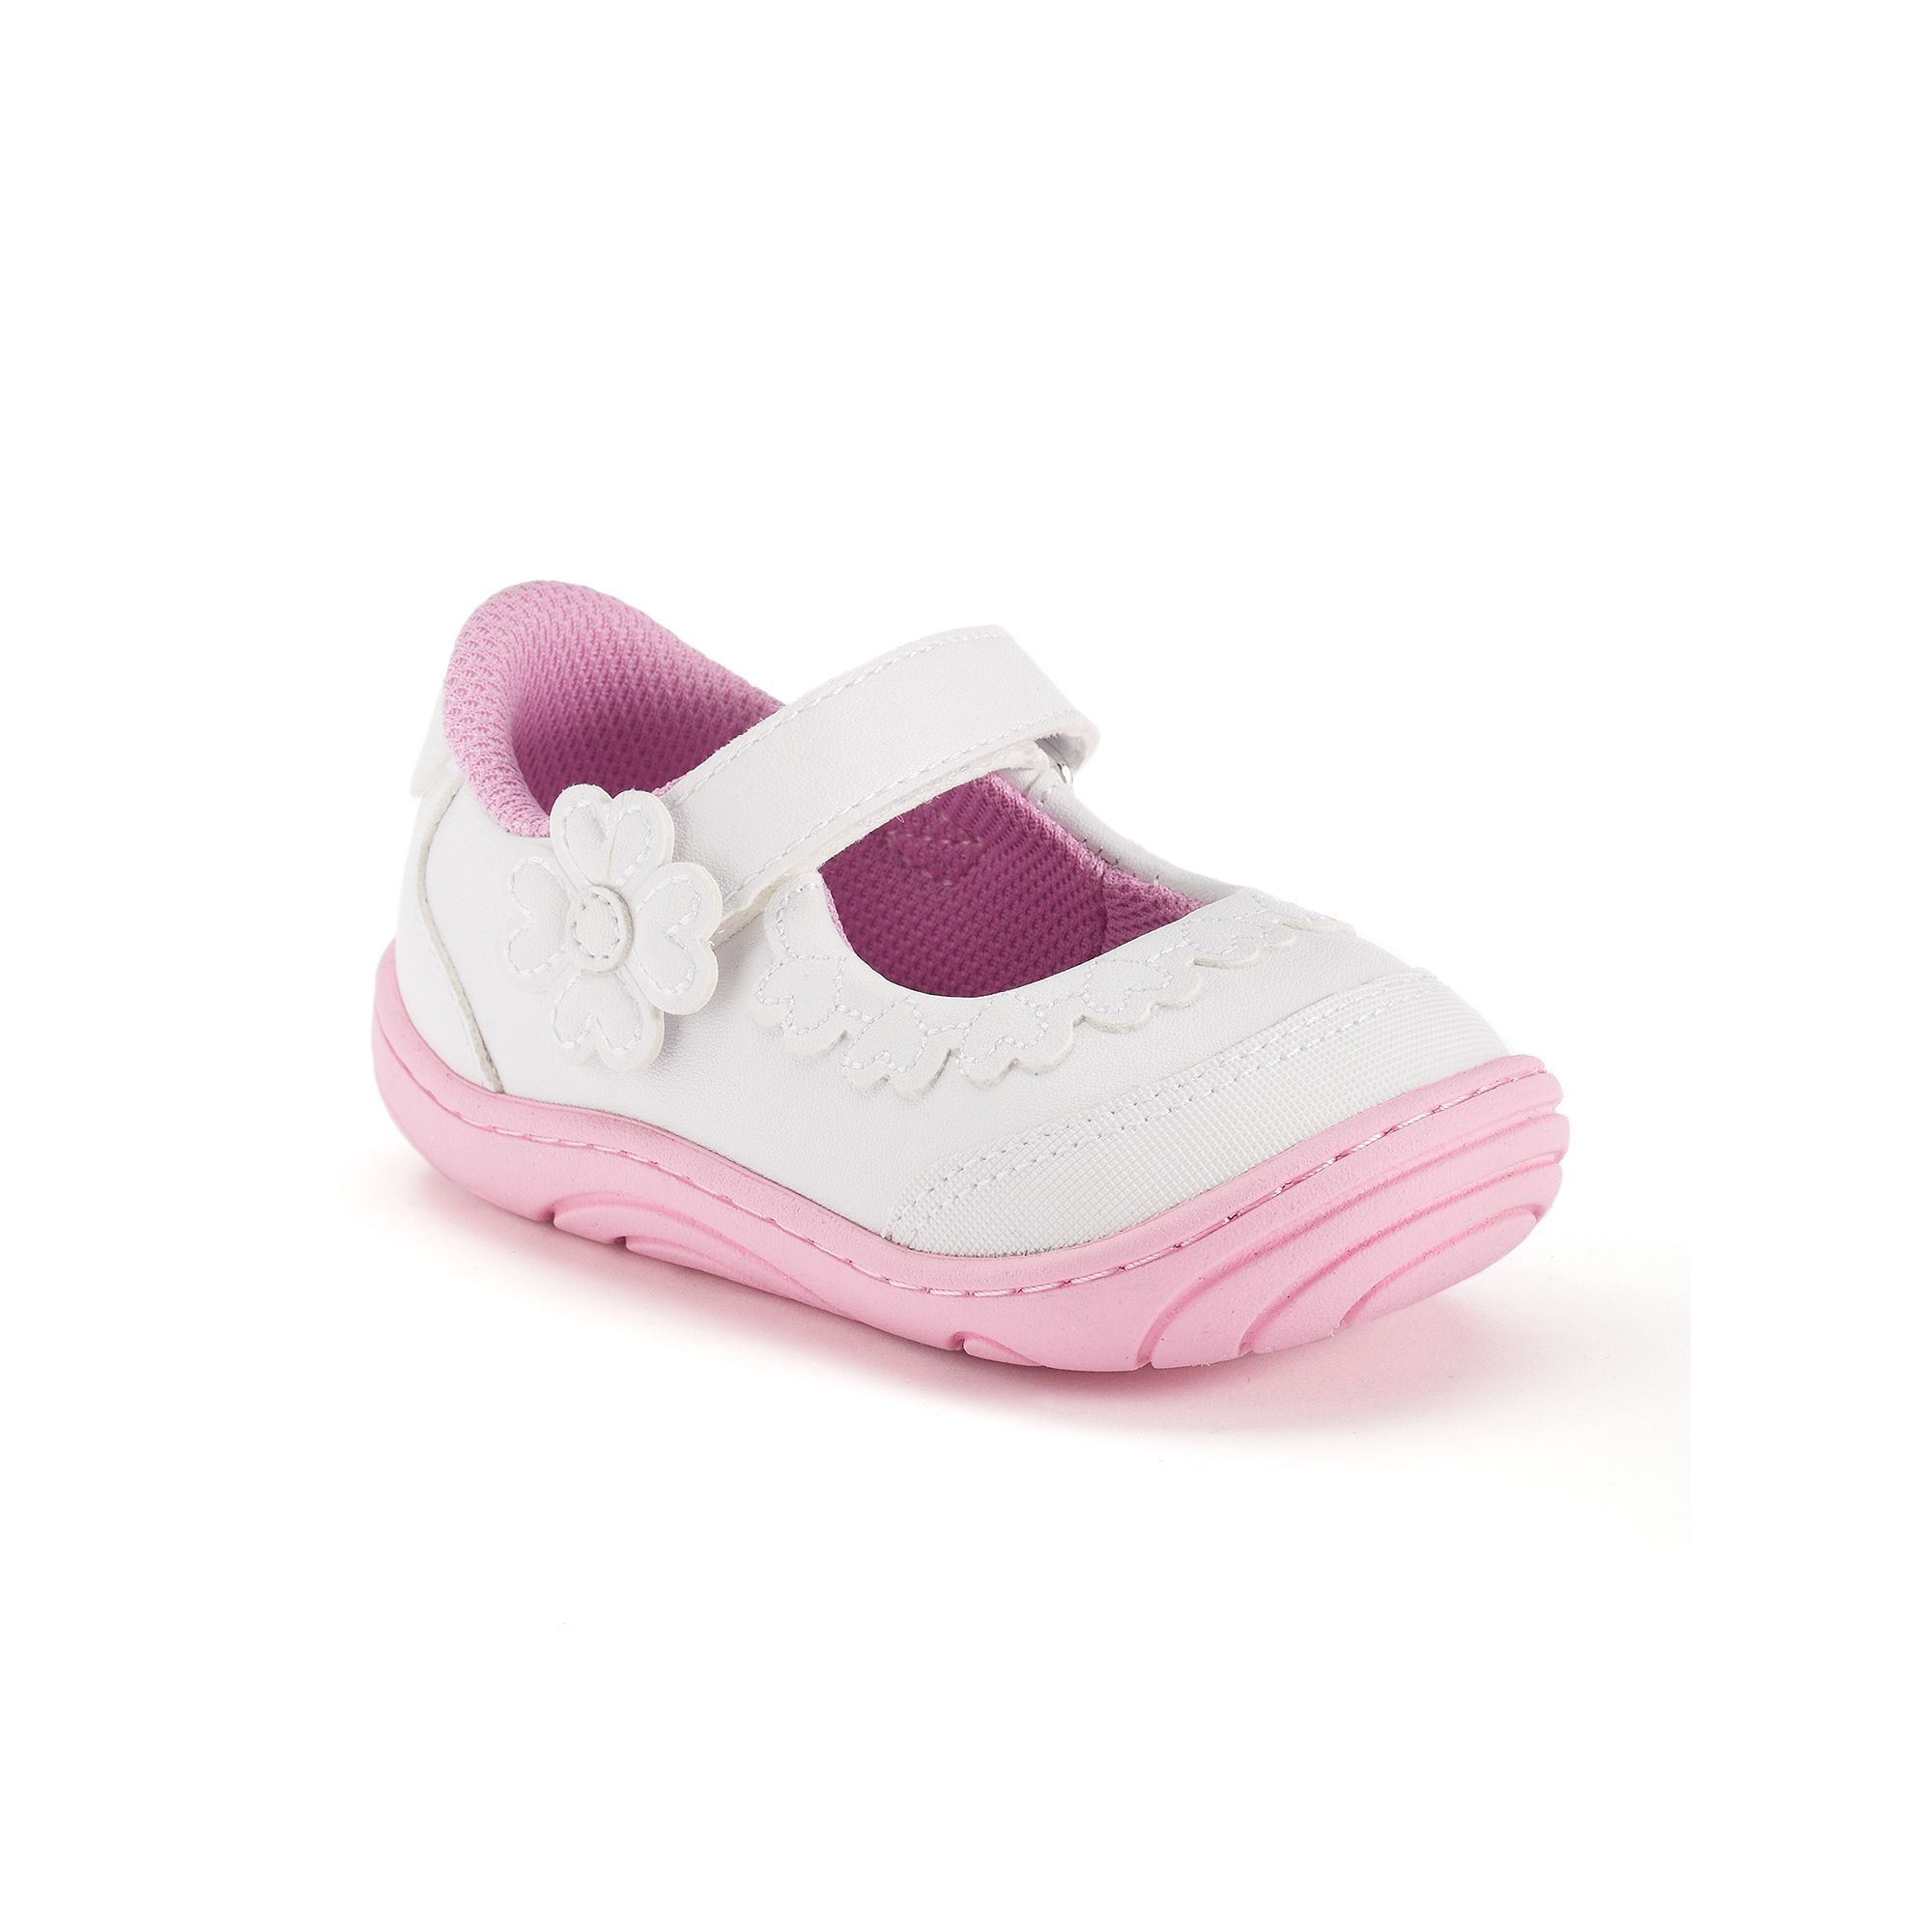 Stride Rite Alda Baby Toddler Girls Mary Jane Shoes